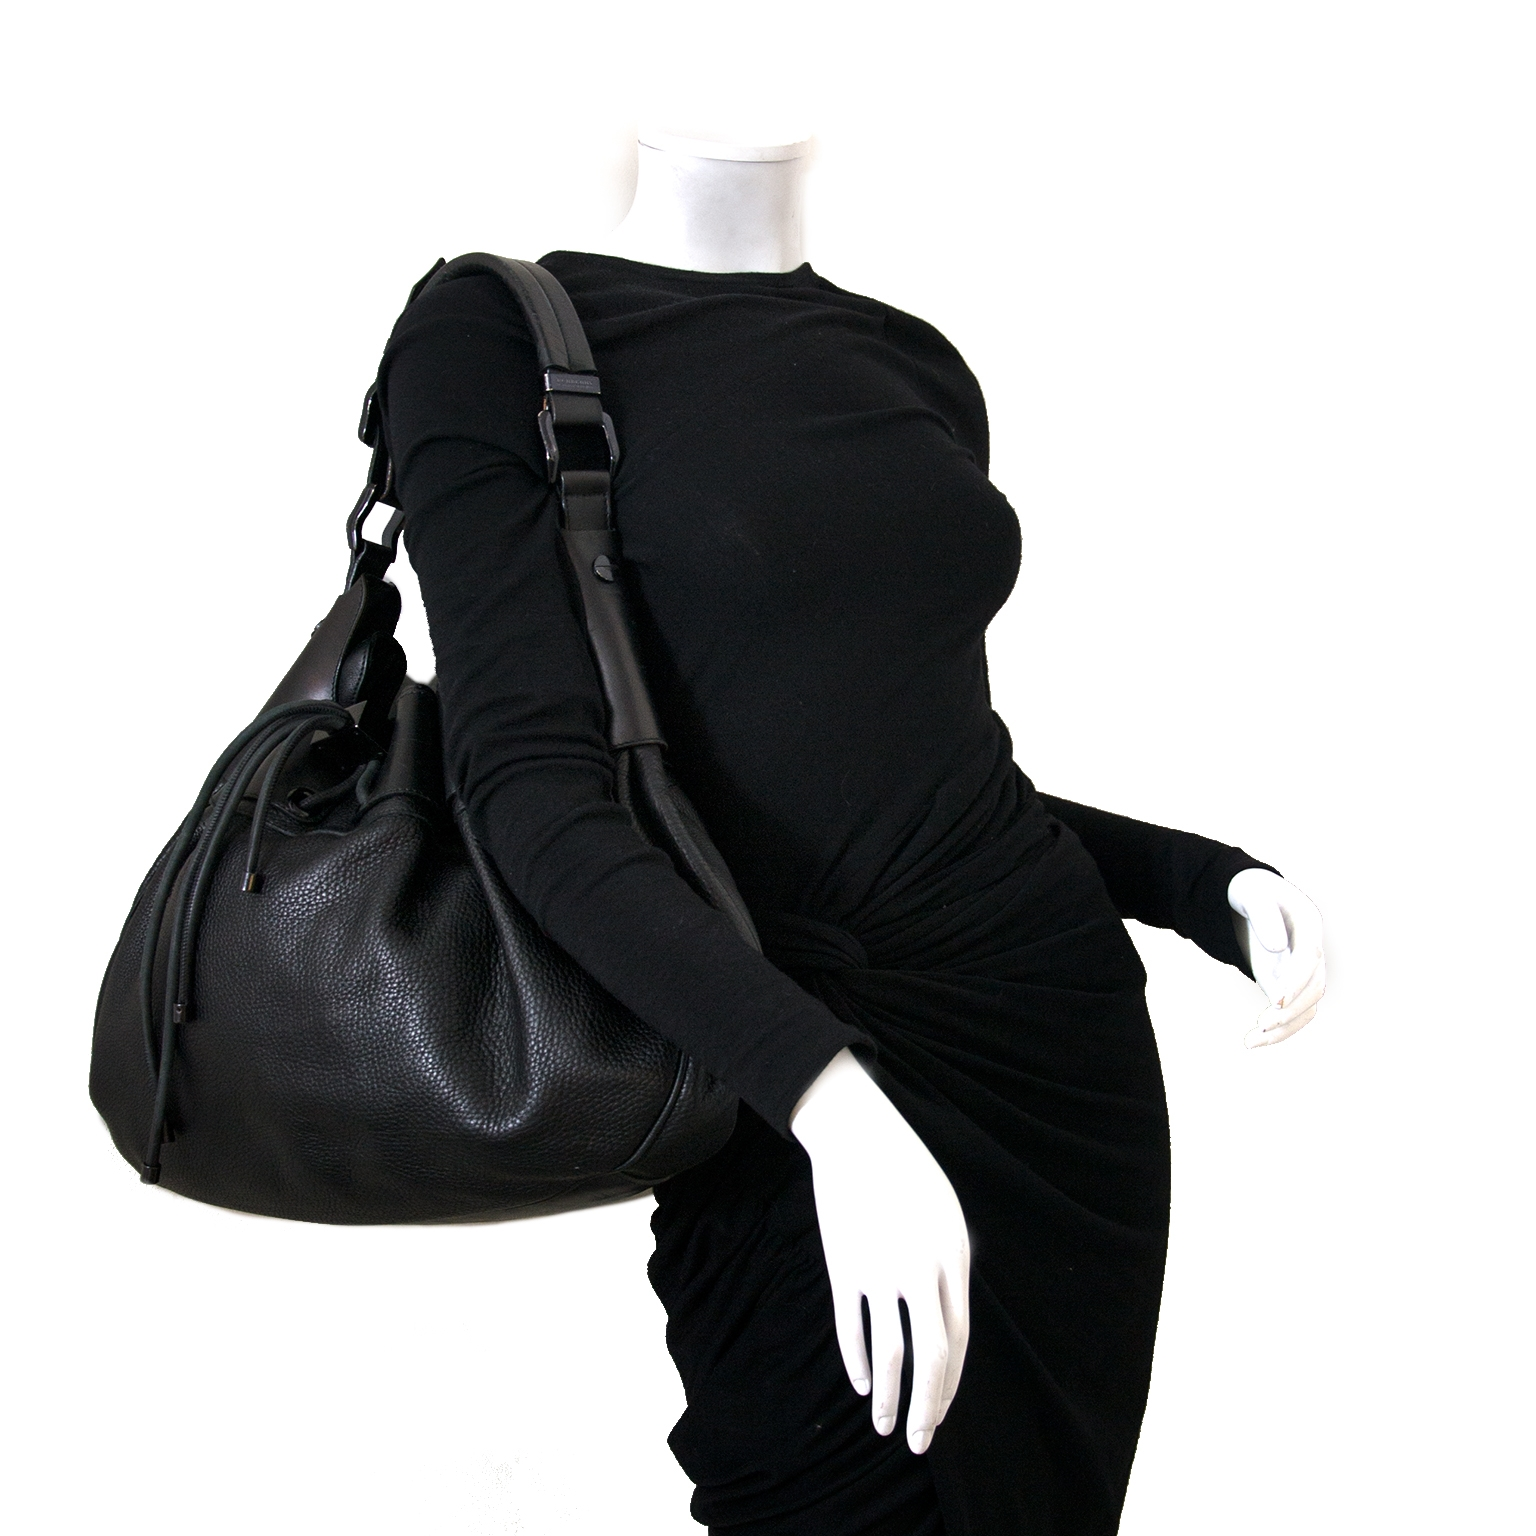 looking for a Burberry Black Large Warrior Hobo Bag? now online for the best price at labellov.com